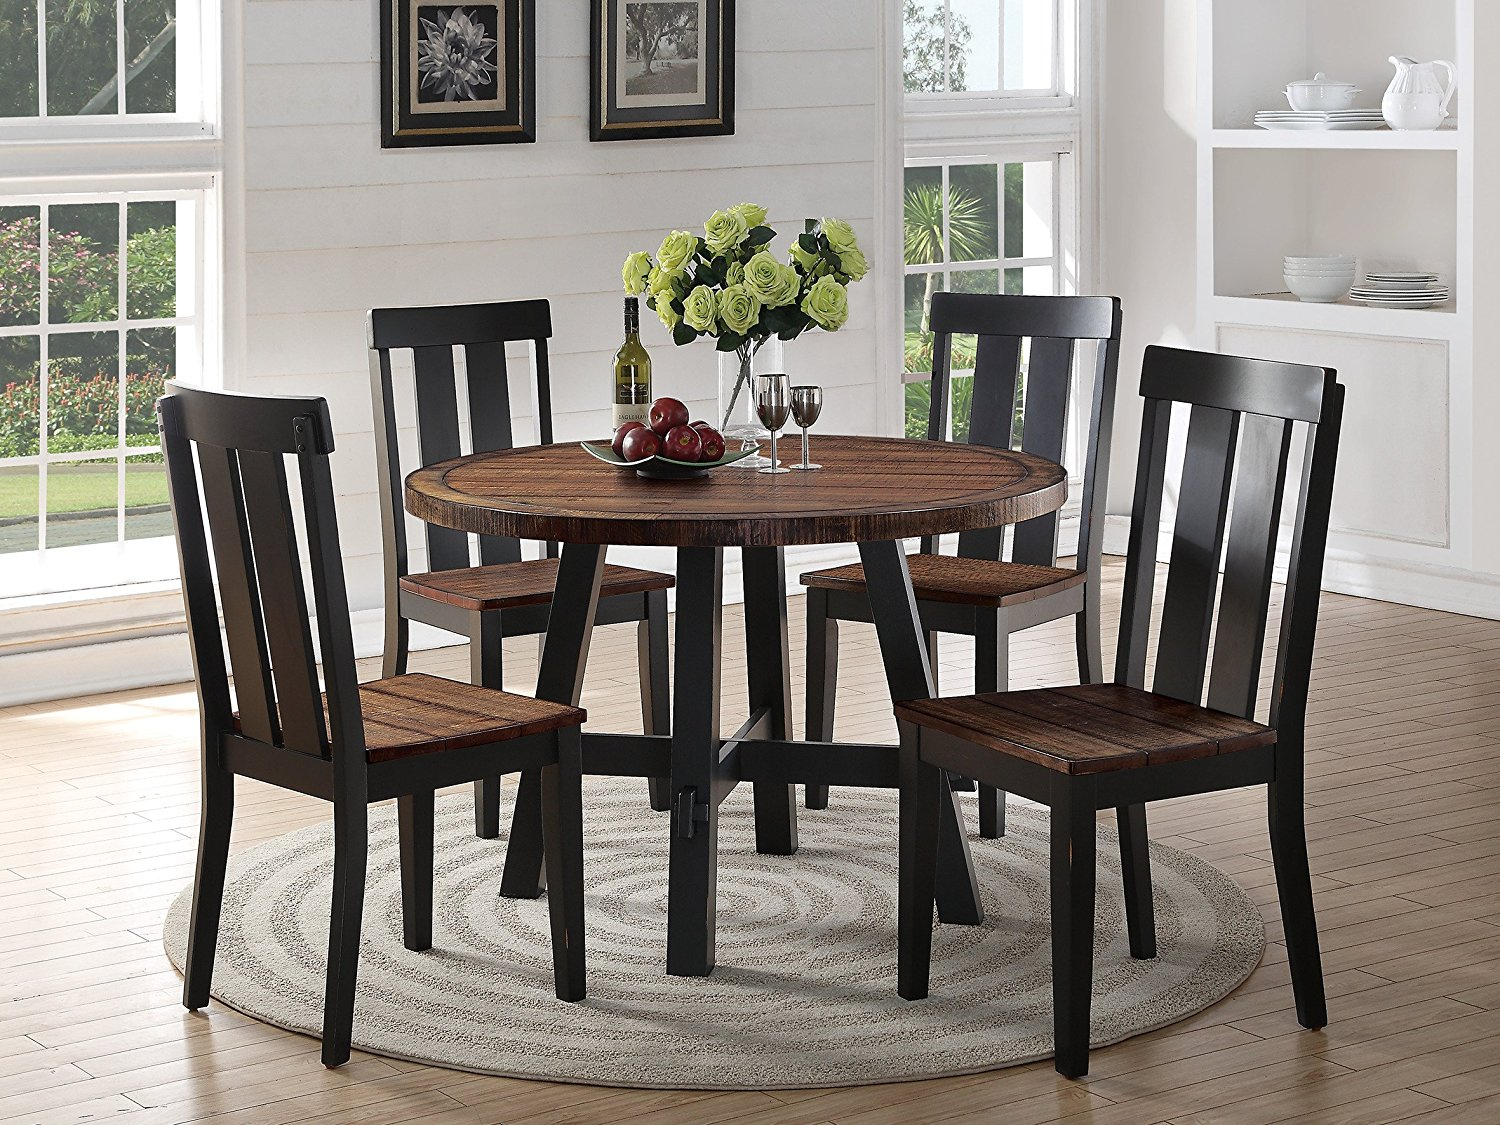 Modern Casual Small Kitchen Dining Room 5pc Set Distress Wood Dark Brown Finish Round Dining Table & 4 Side Chairs Kitchen Breakfast Room